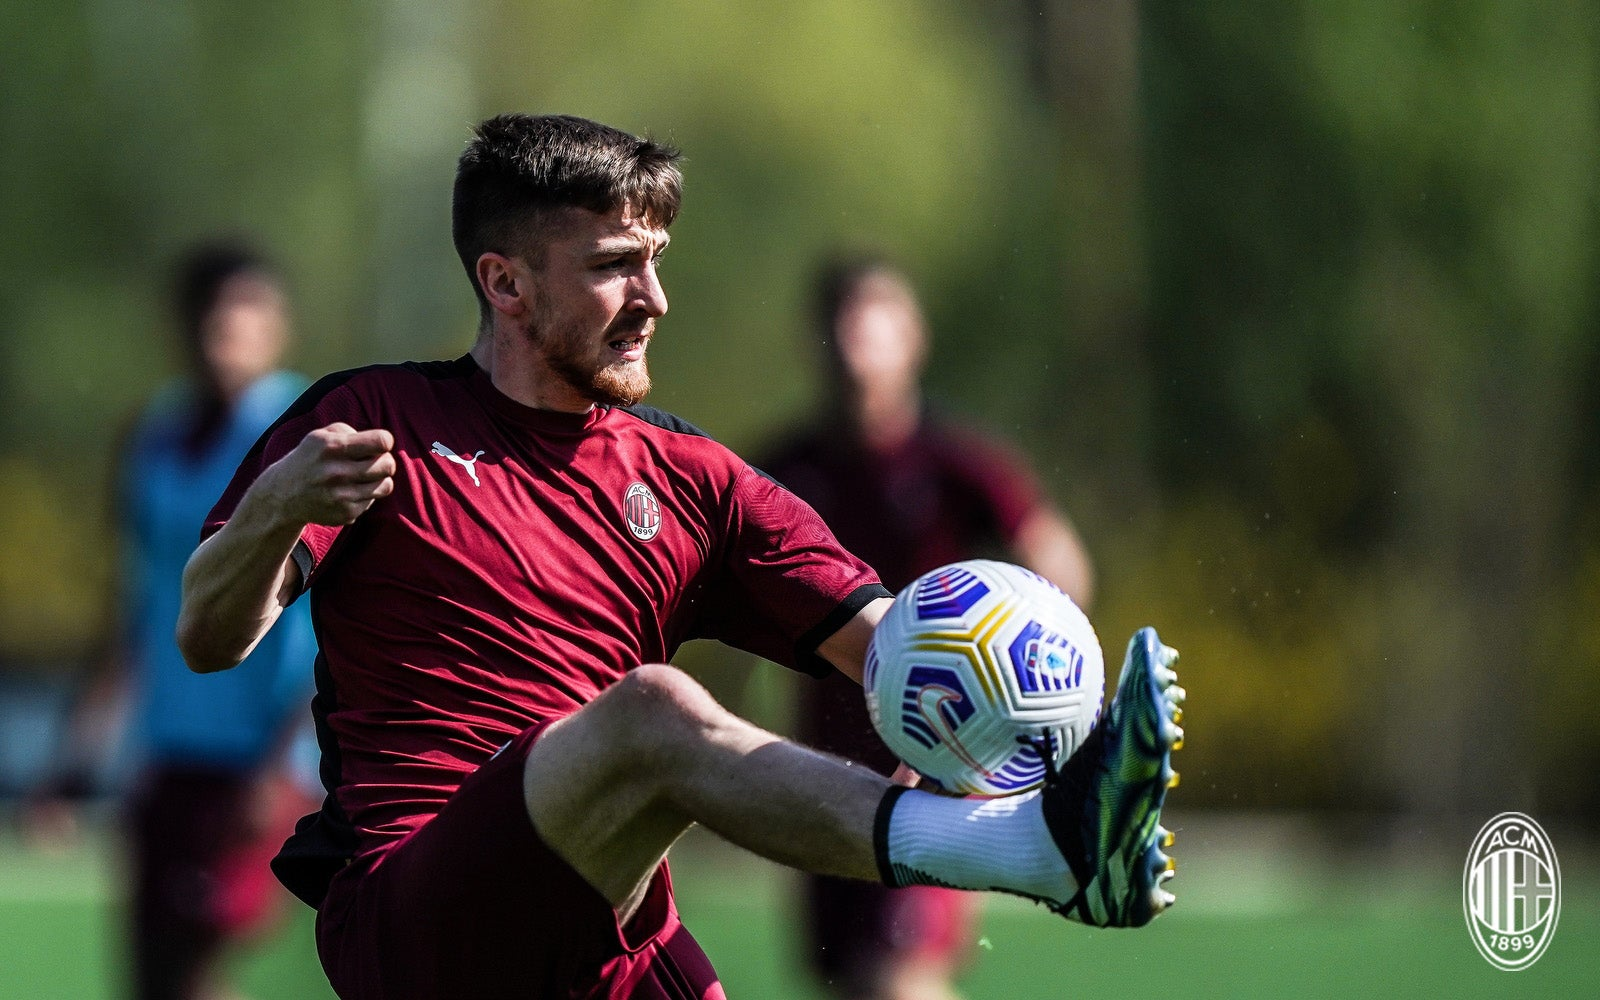 Milan-Sampdoria: The Rossoneri squad | Rossoneri Blog - AC Milan News